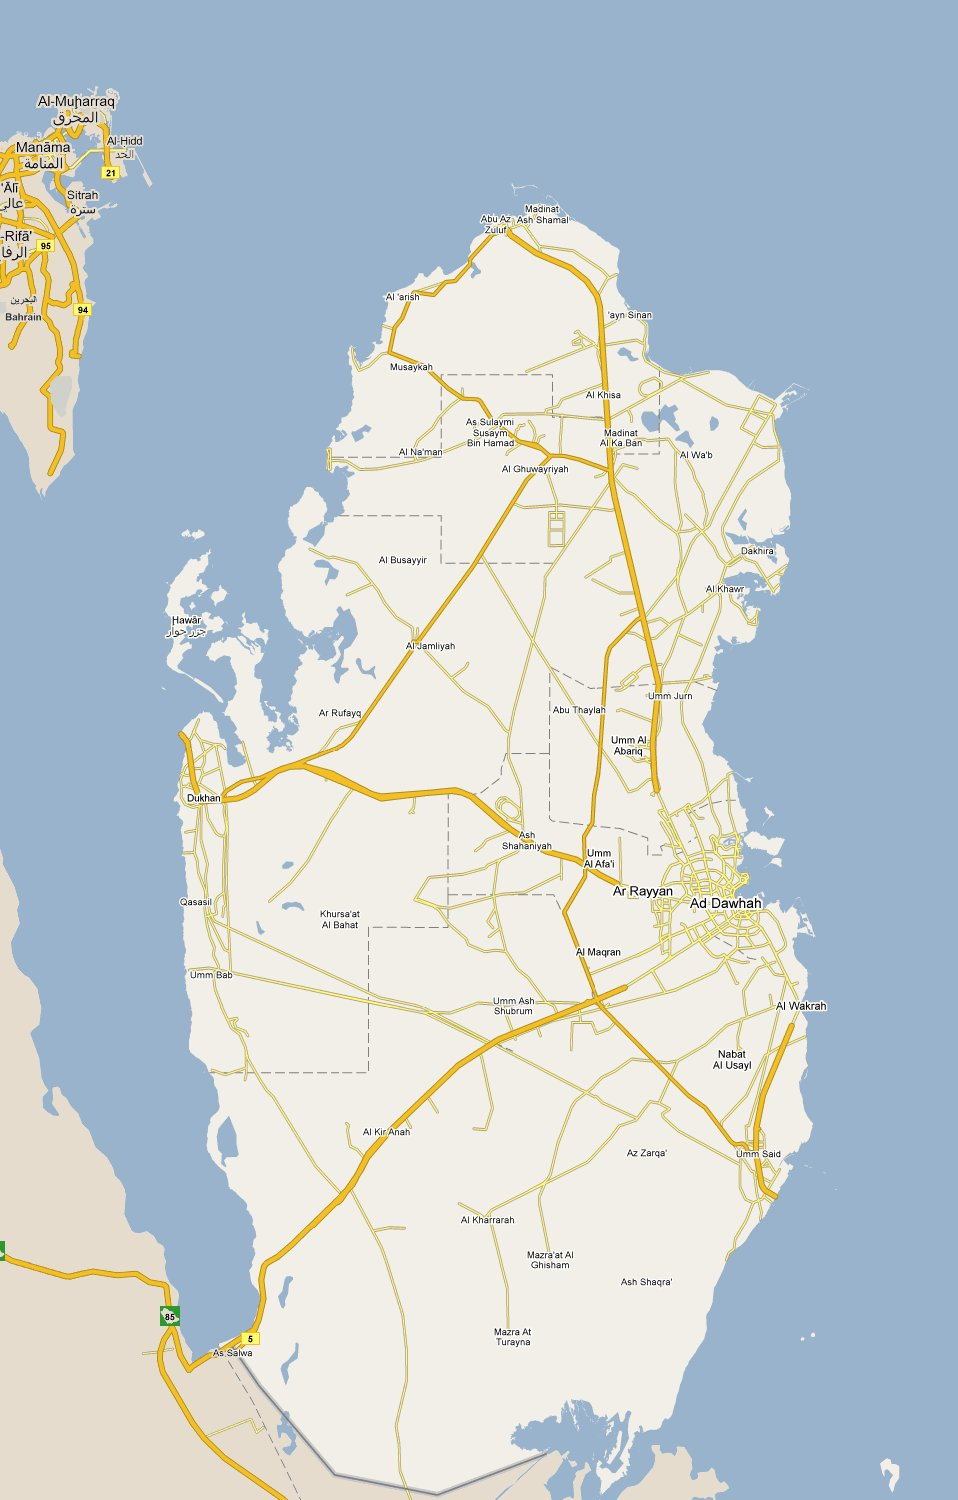 Footiemapcom Qatar 20102011 Map of Top Tier Qatari Football